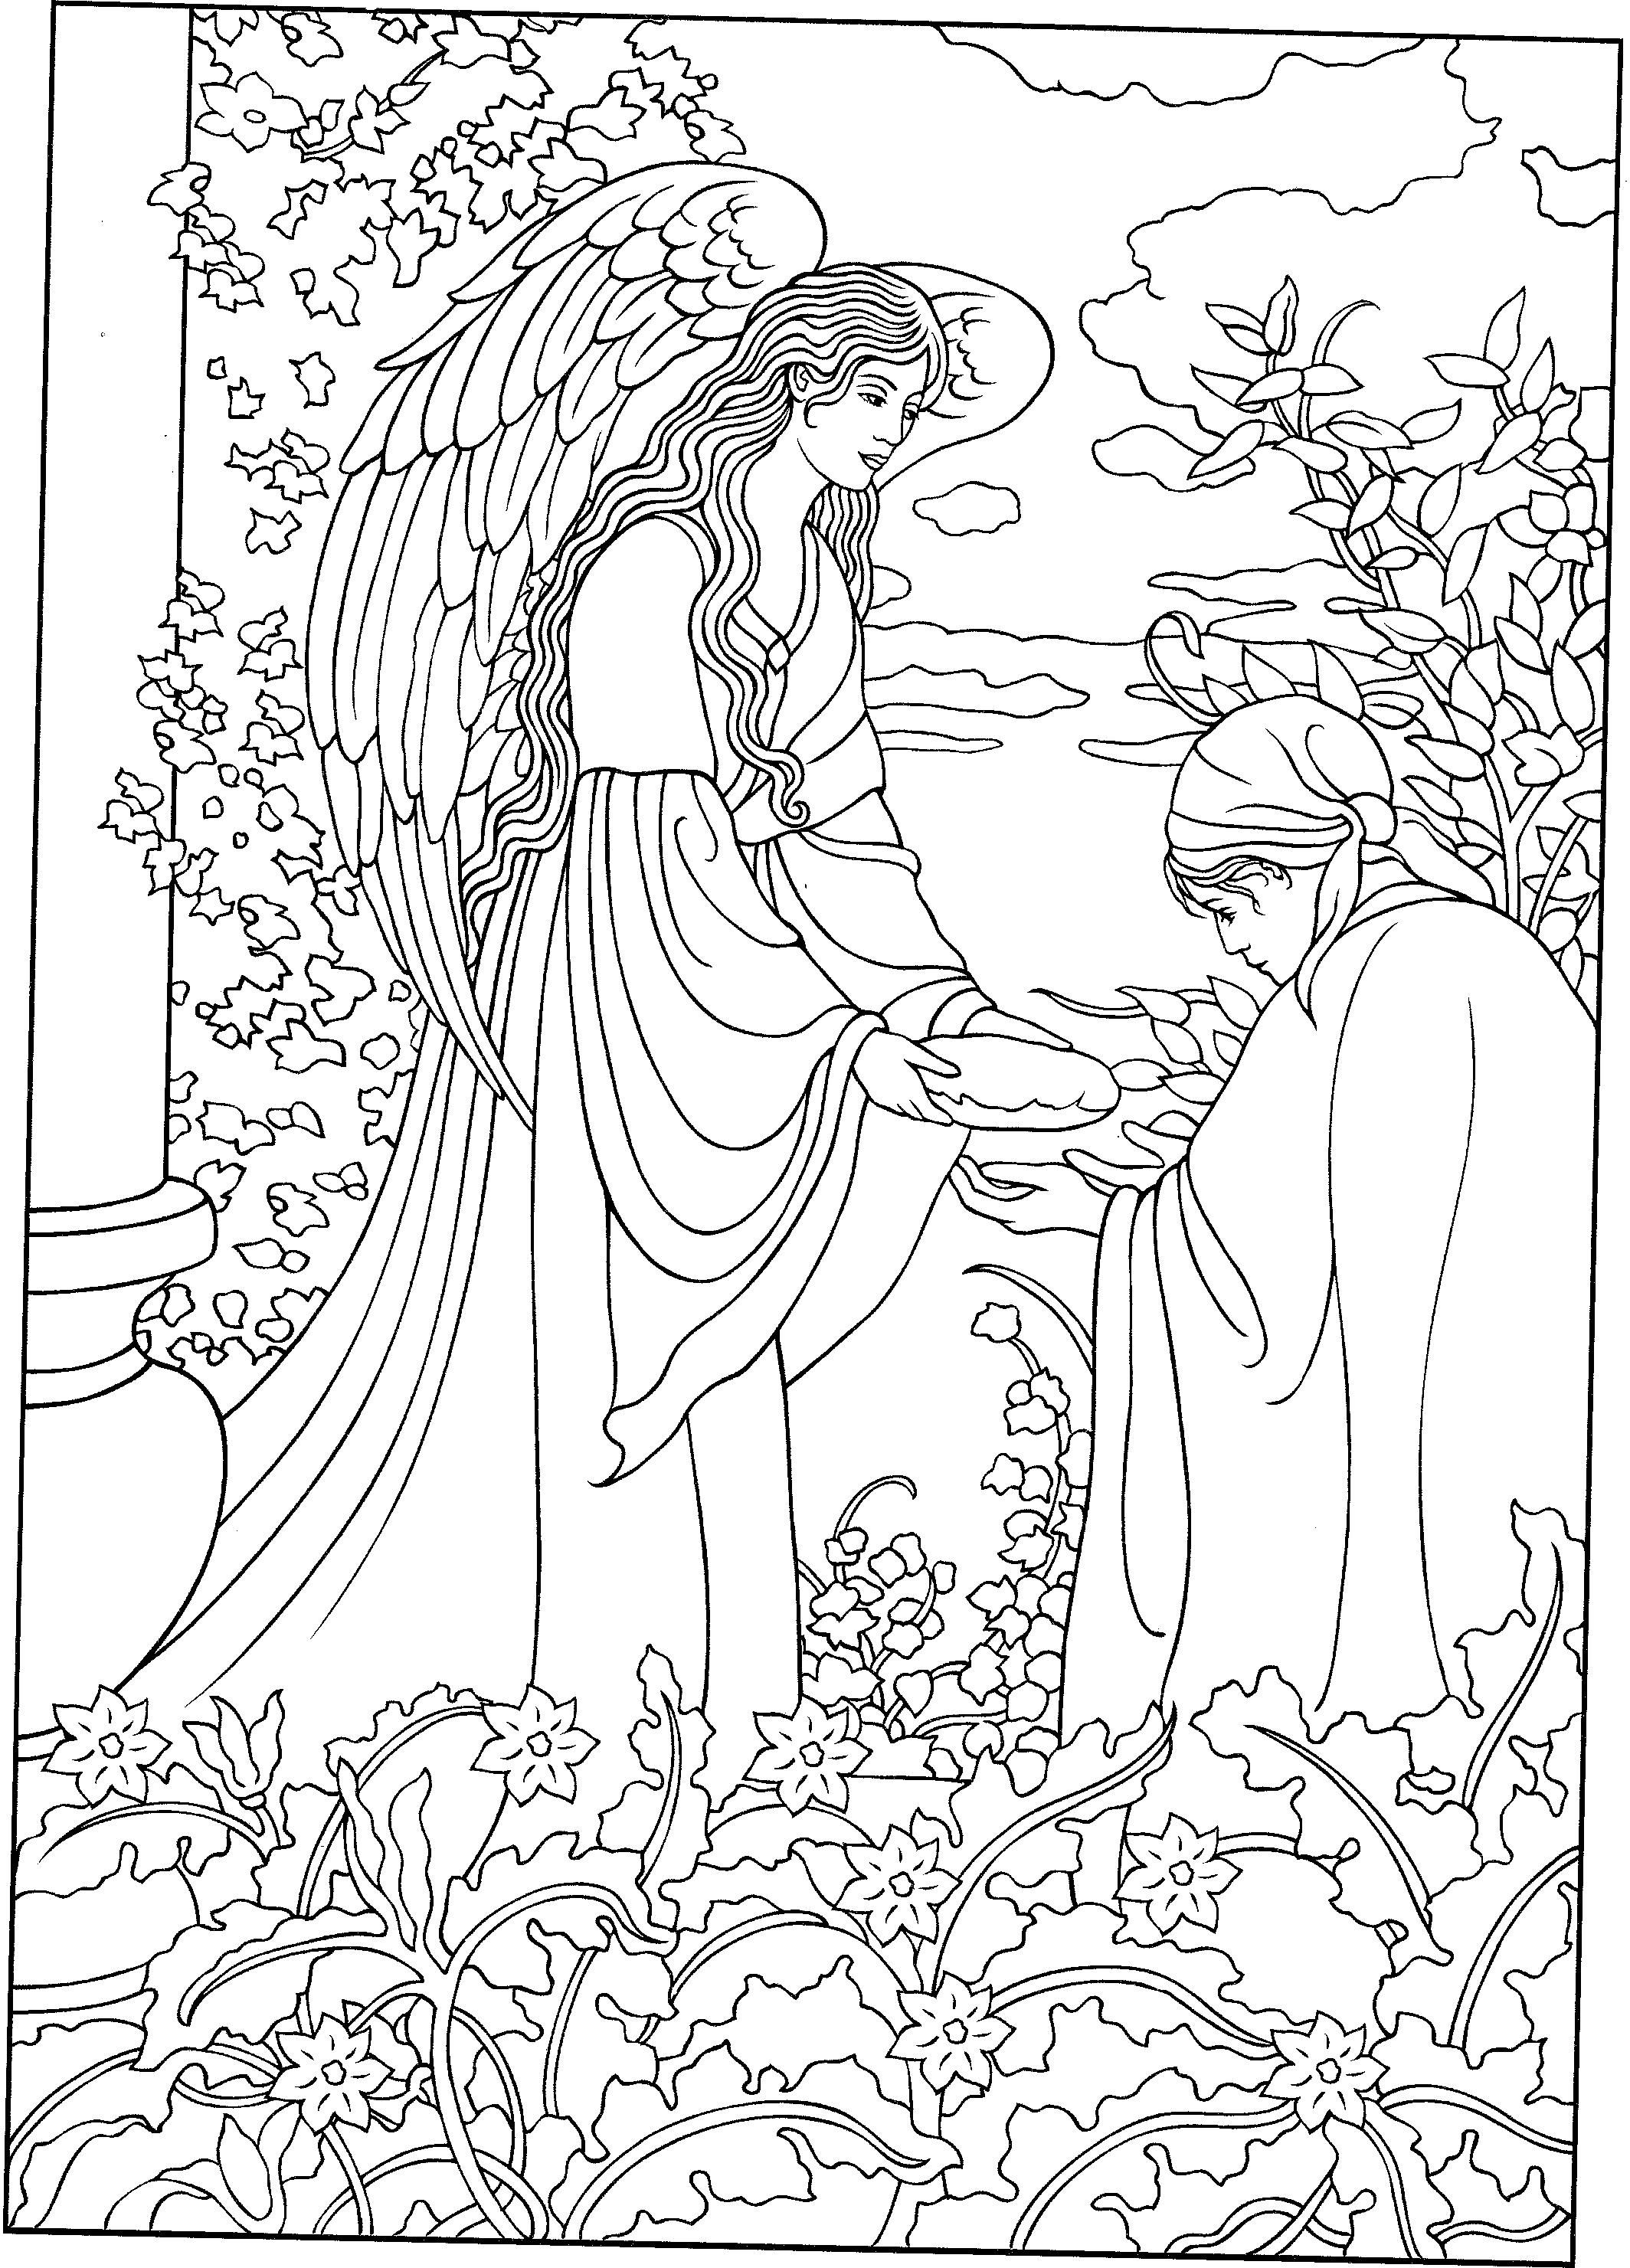 angel coloring pages for adults beautiful angel coloring page angel coloring pages coloring for adults pages angel